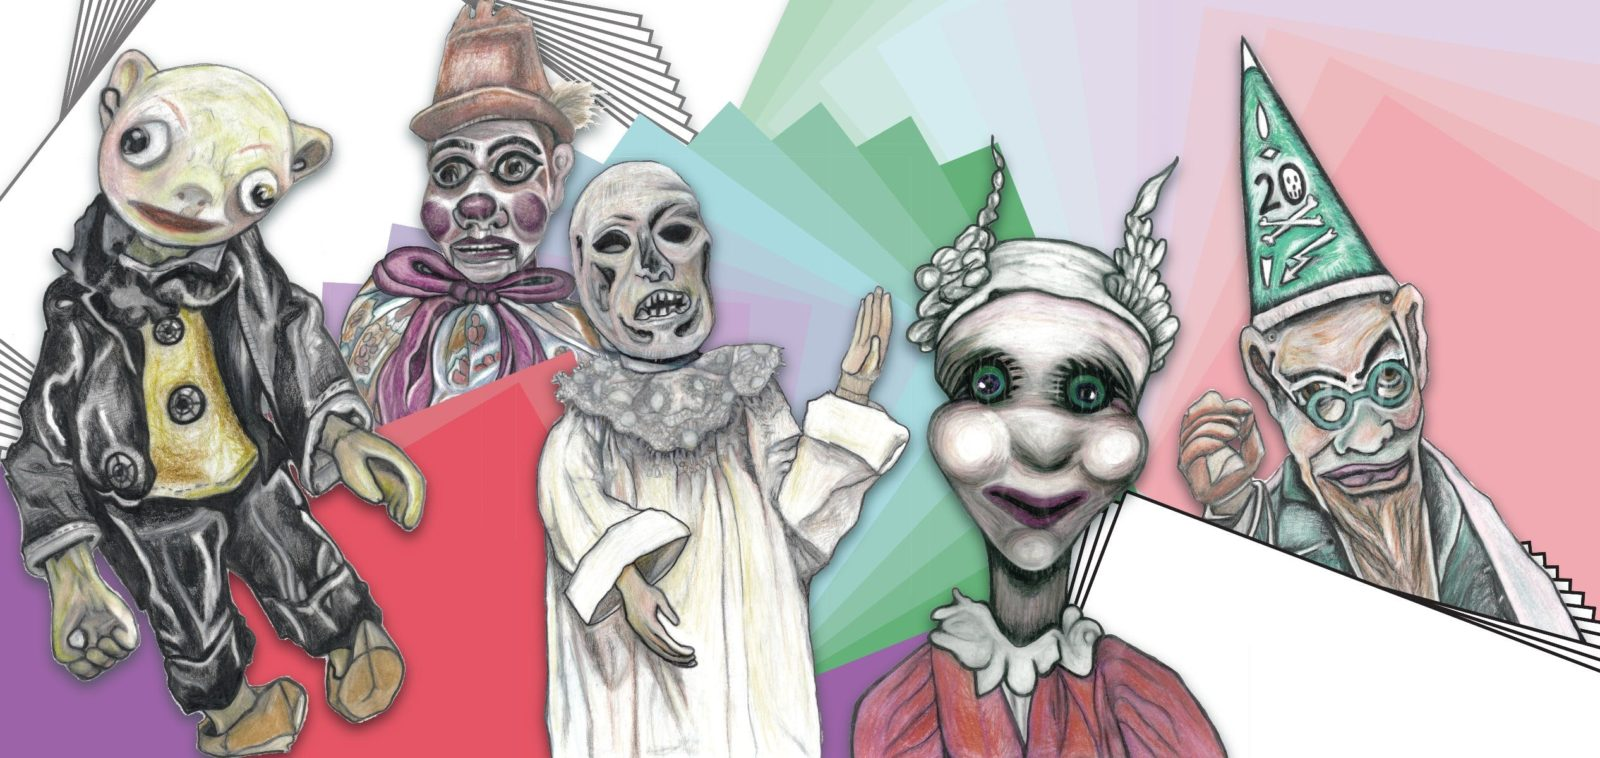 A collage of colourful puppets